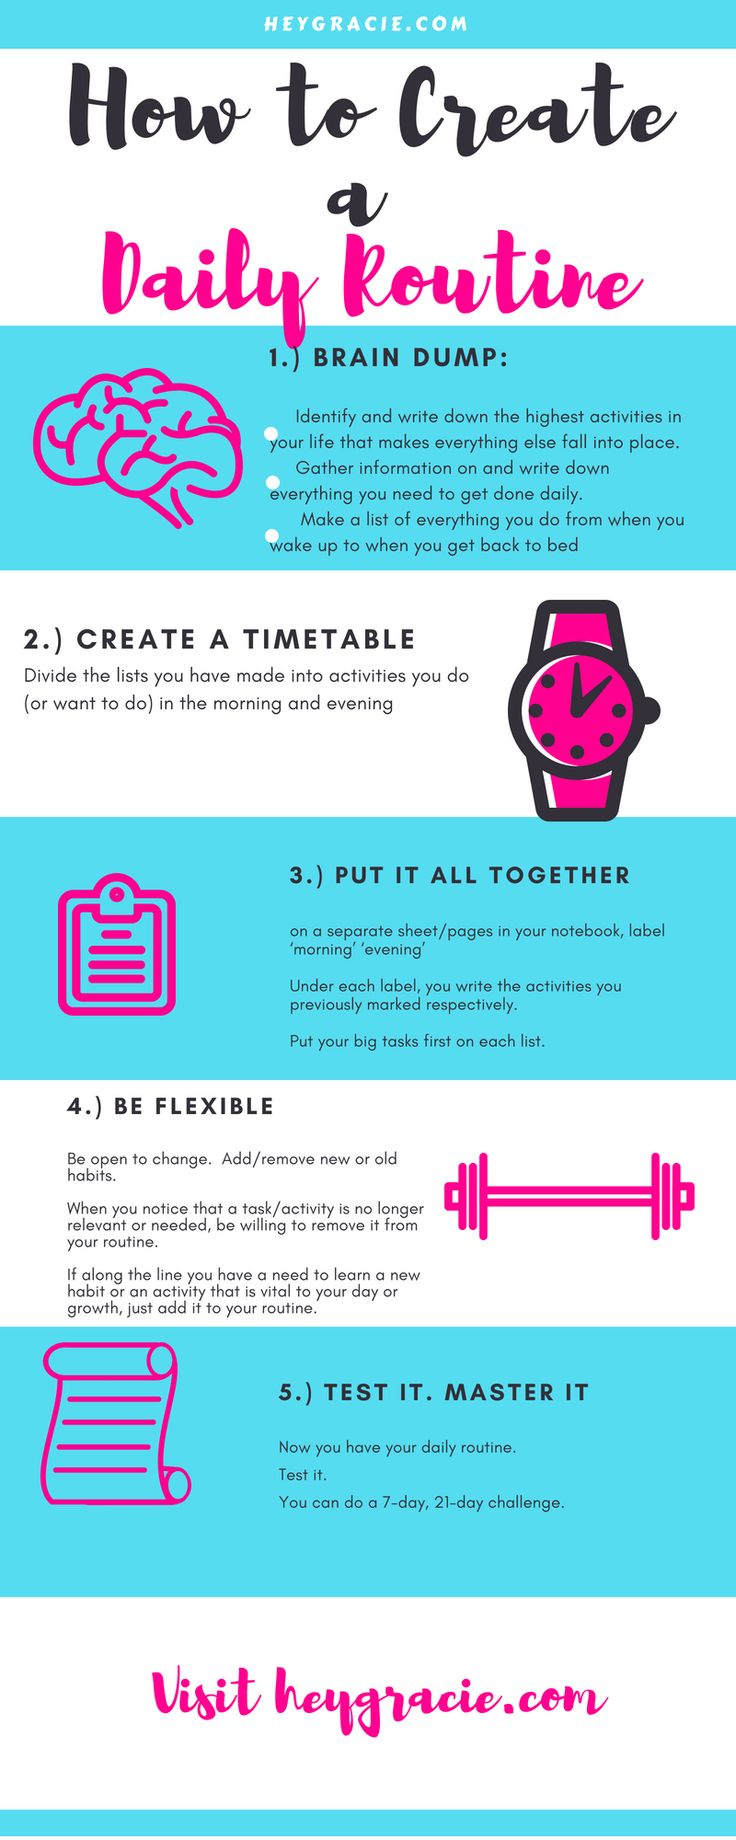 5 Easy Ways To Create a Daily Routine- Self-improvement